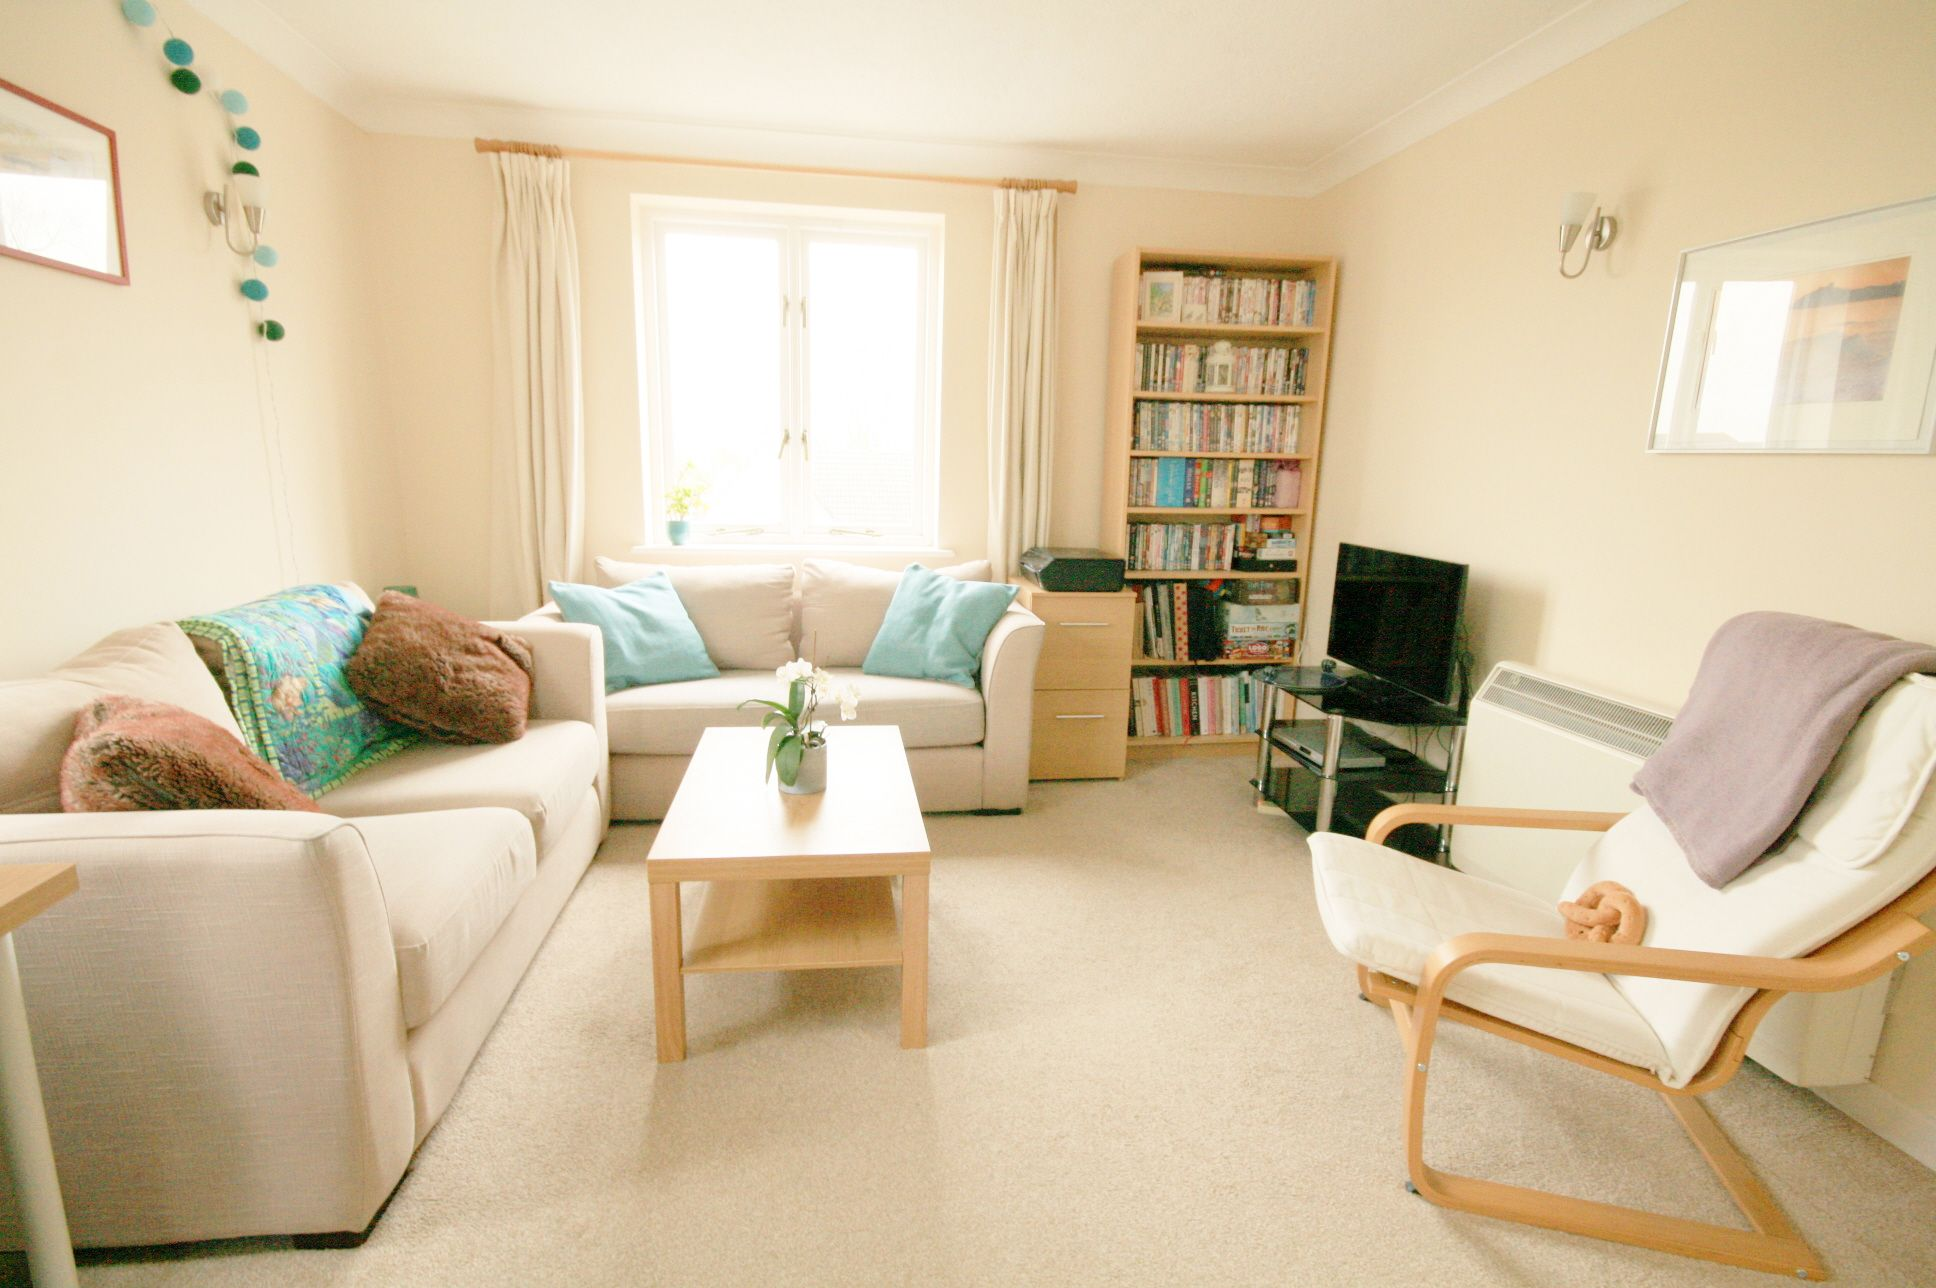 1 Bedroom Apartment Flat/apartment For Sale - Photograph 3